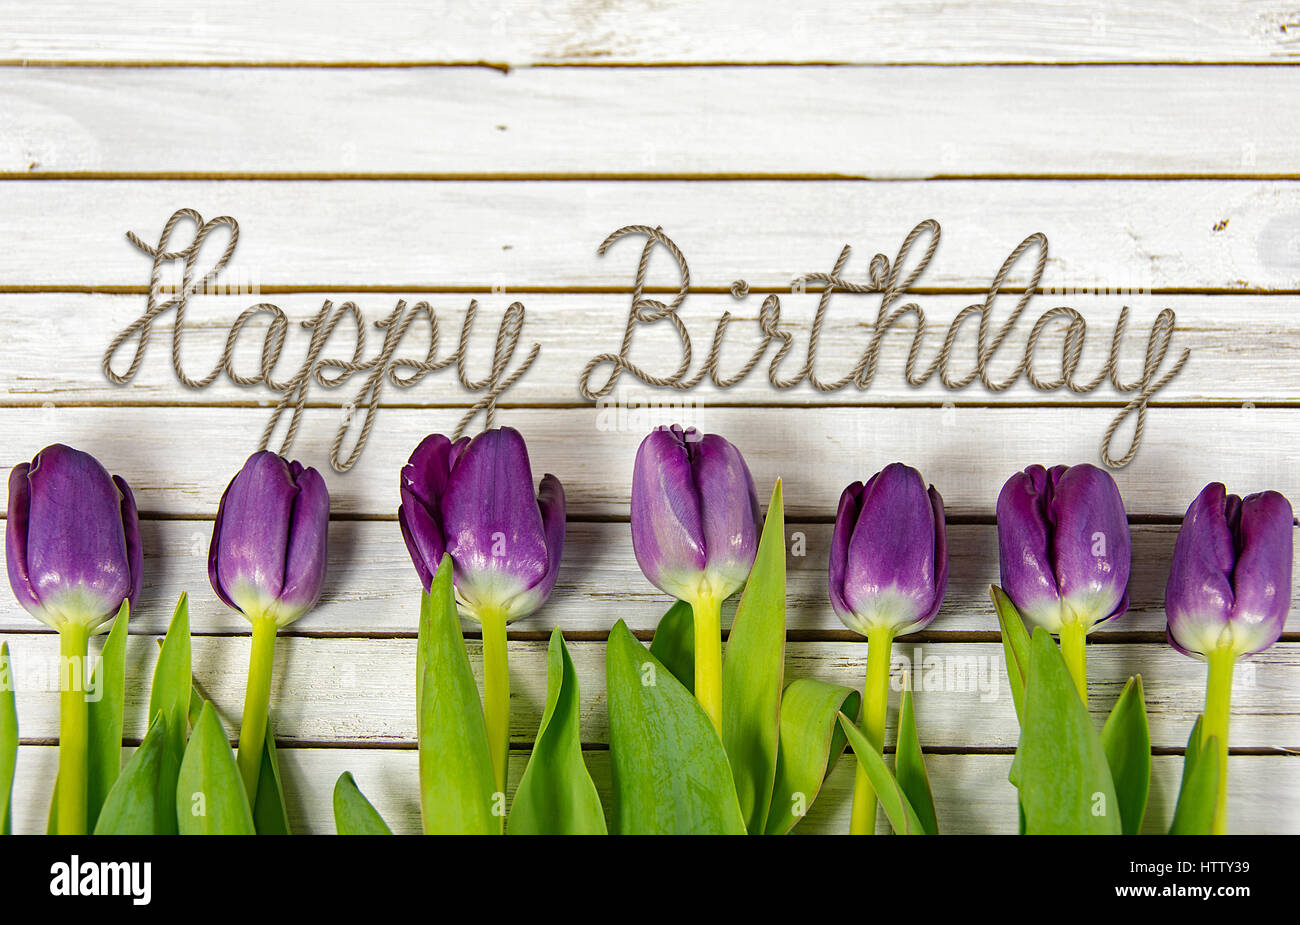 Happy birthday message in rope design with purple tulips on stock stock photo happy birthday message in rope design with purple tulips on whitewashed wood dhlflorist Gallery